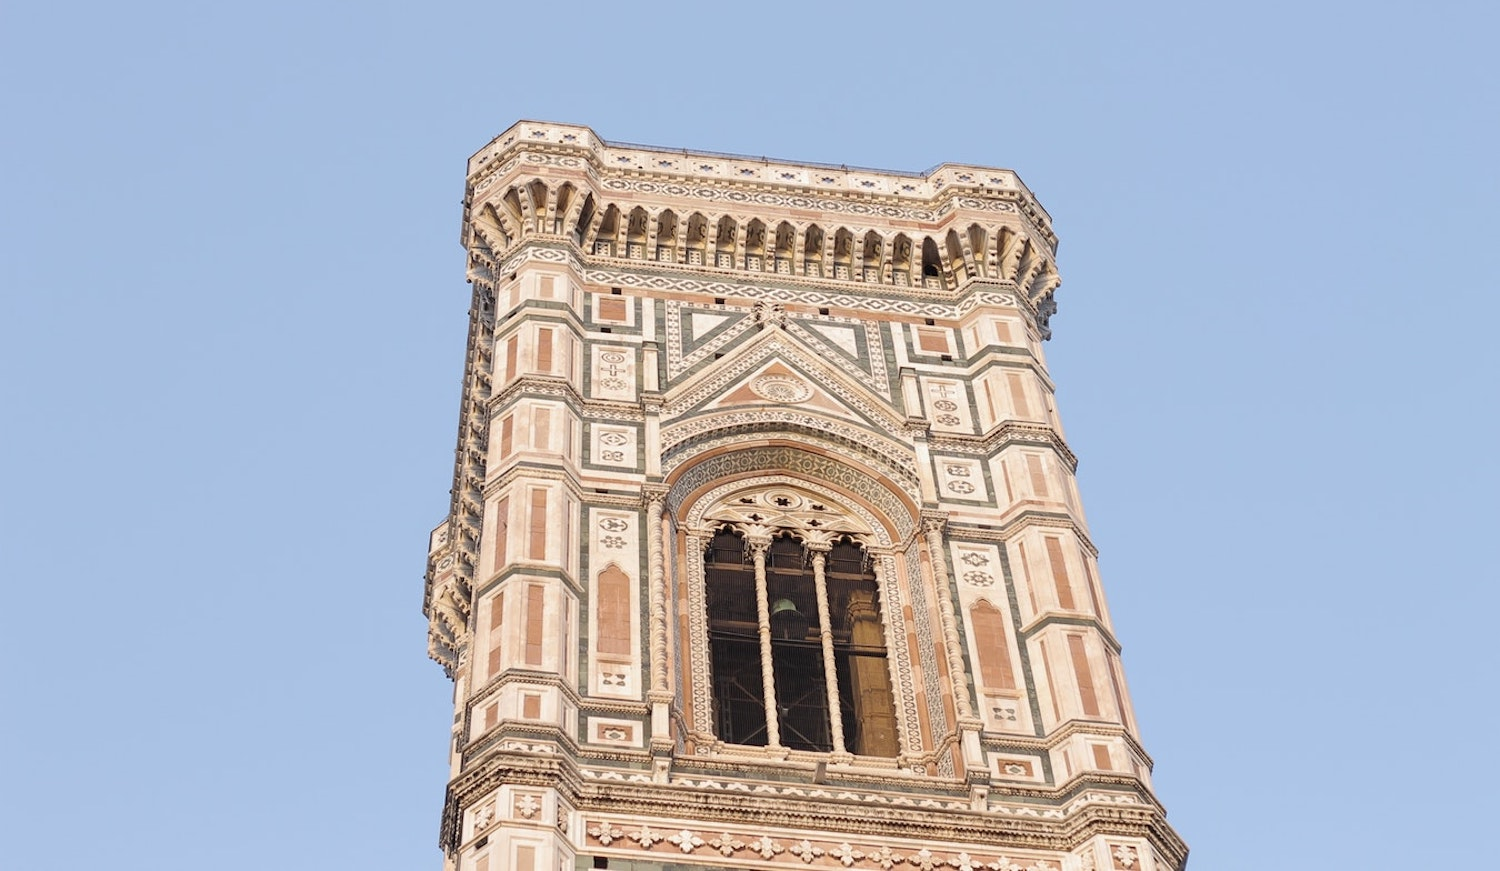 giotto bell's tower